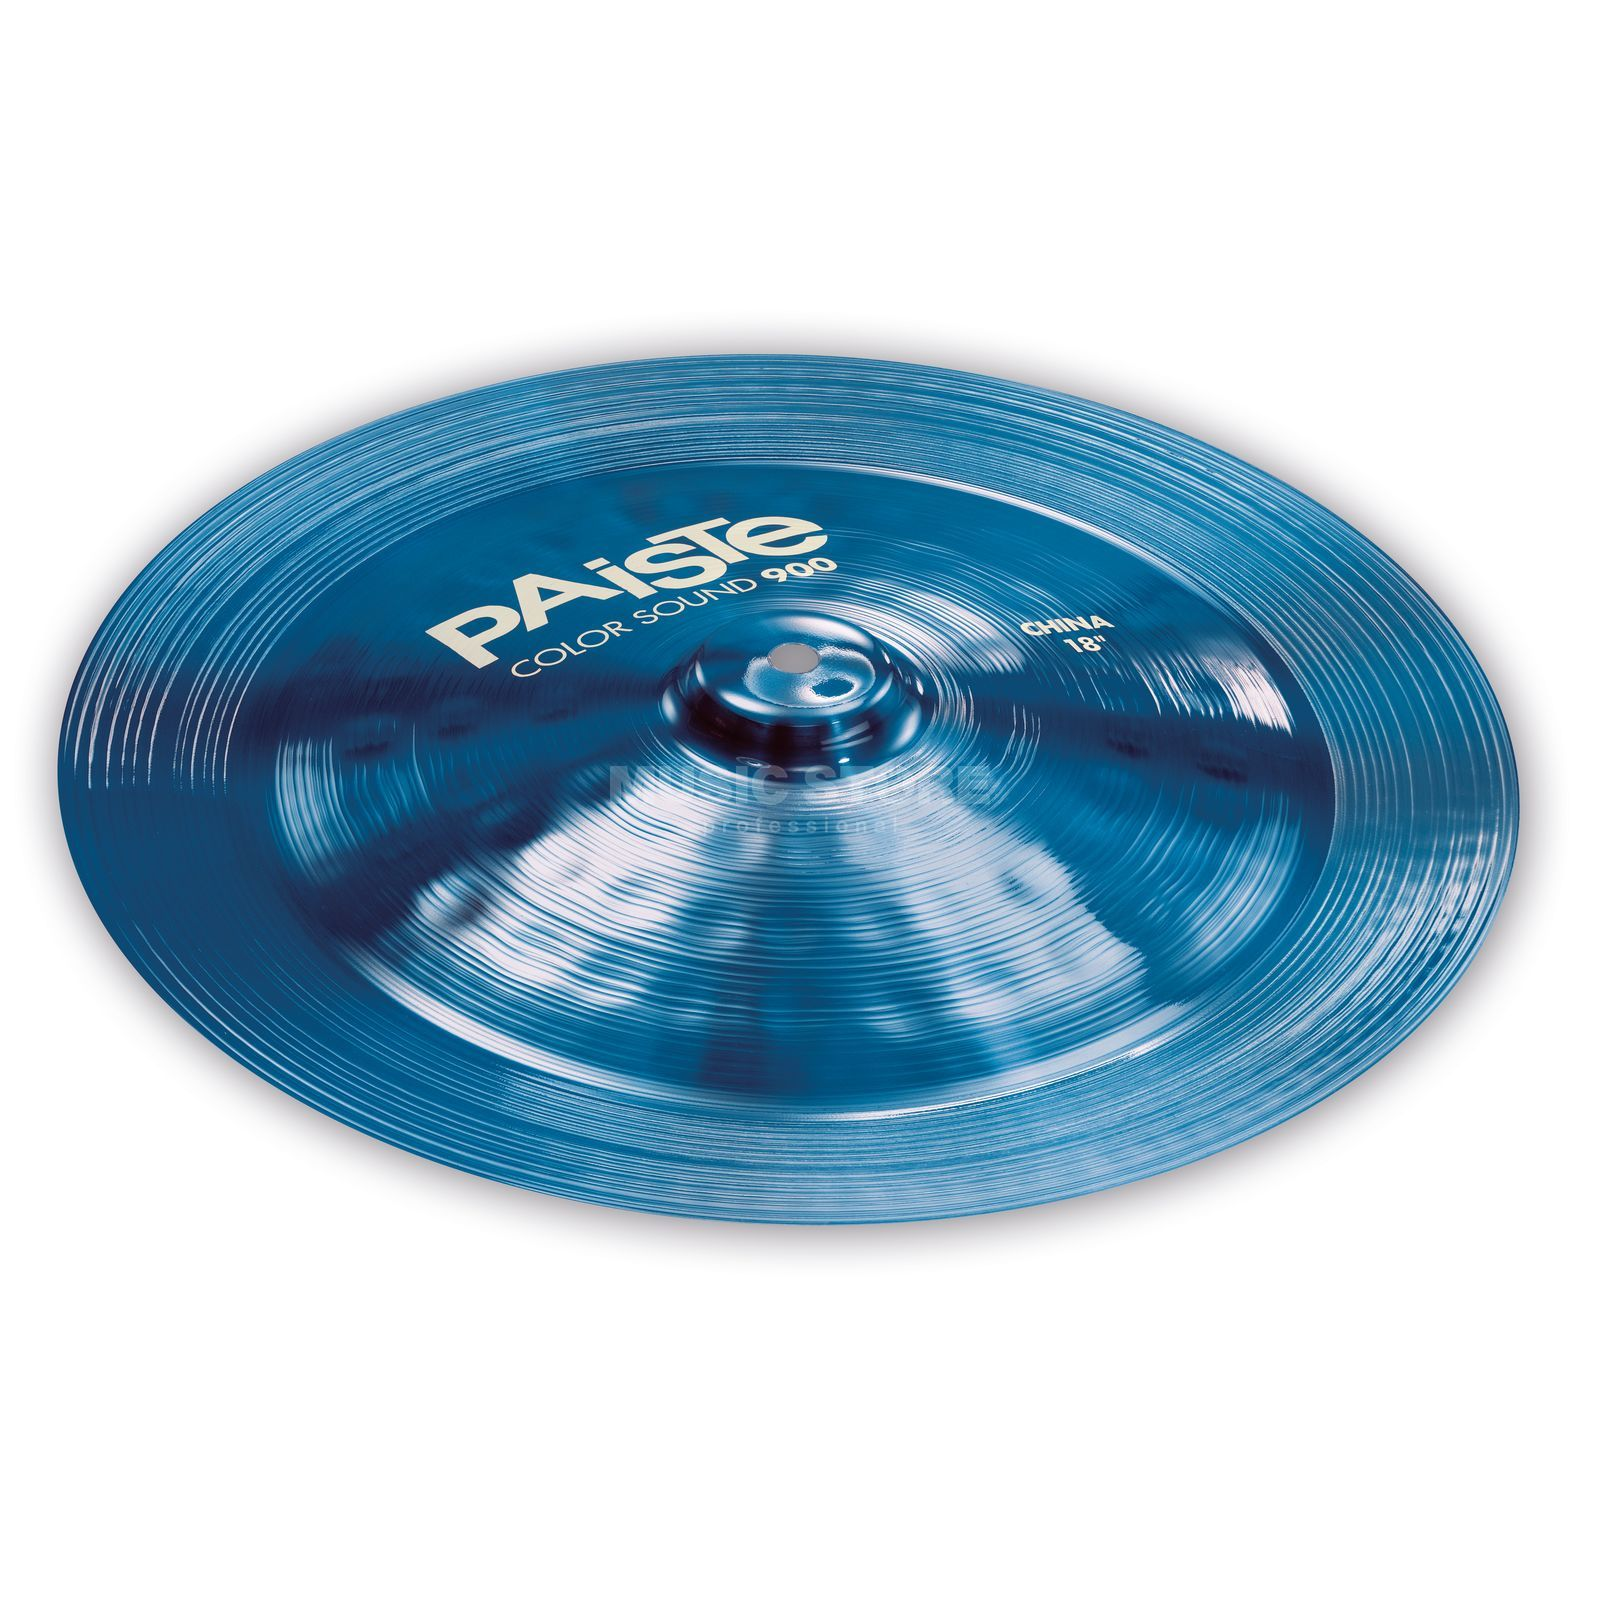 "Paiste CS 900 China 18"" Color Sound Blue Product Image"